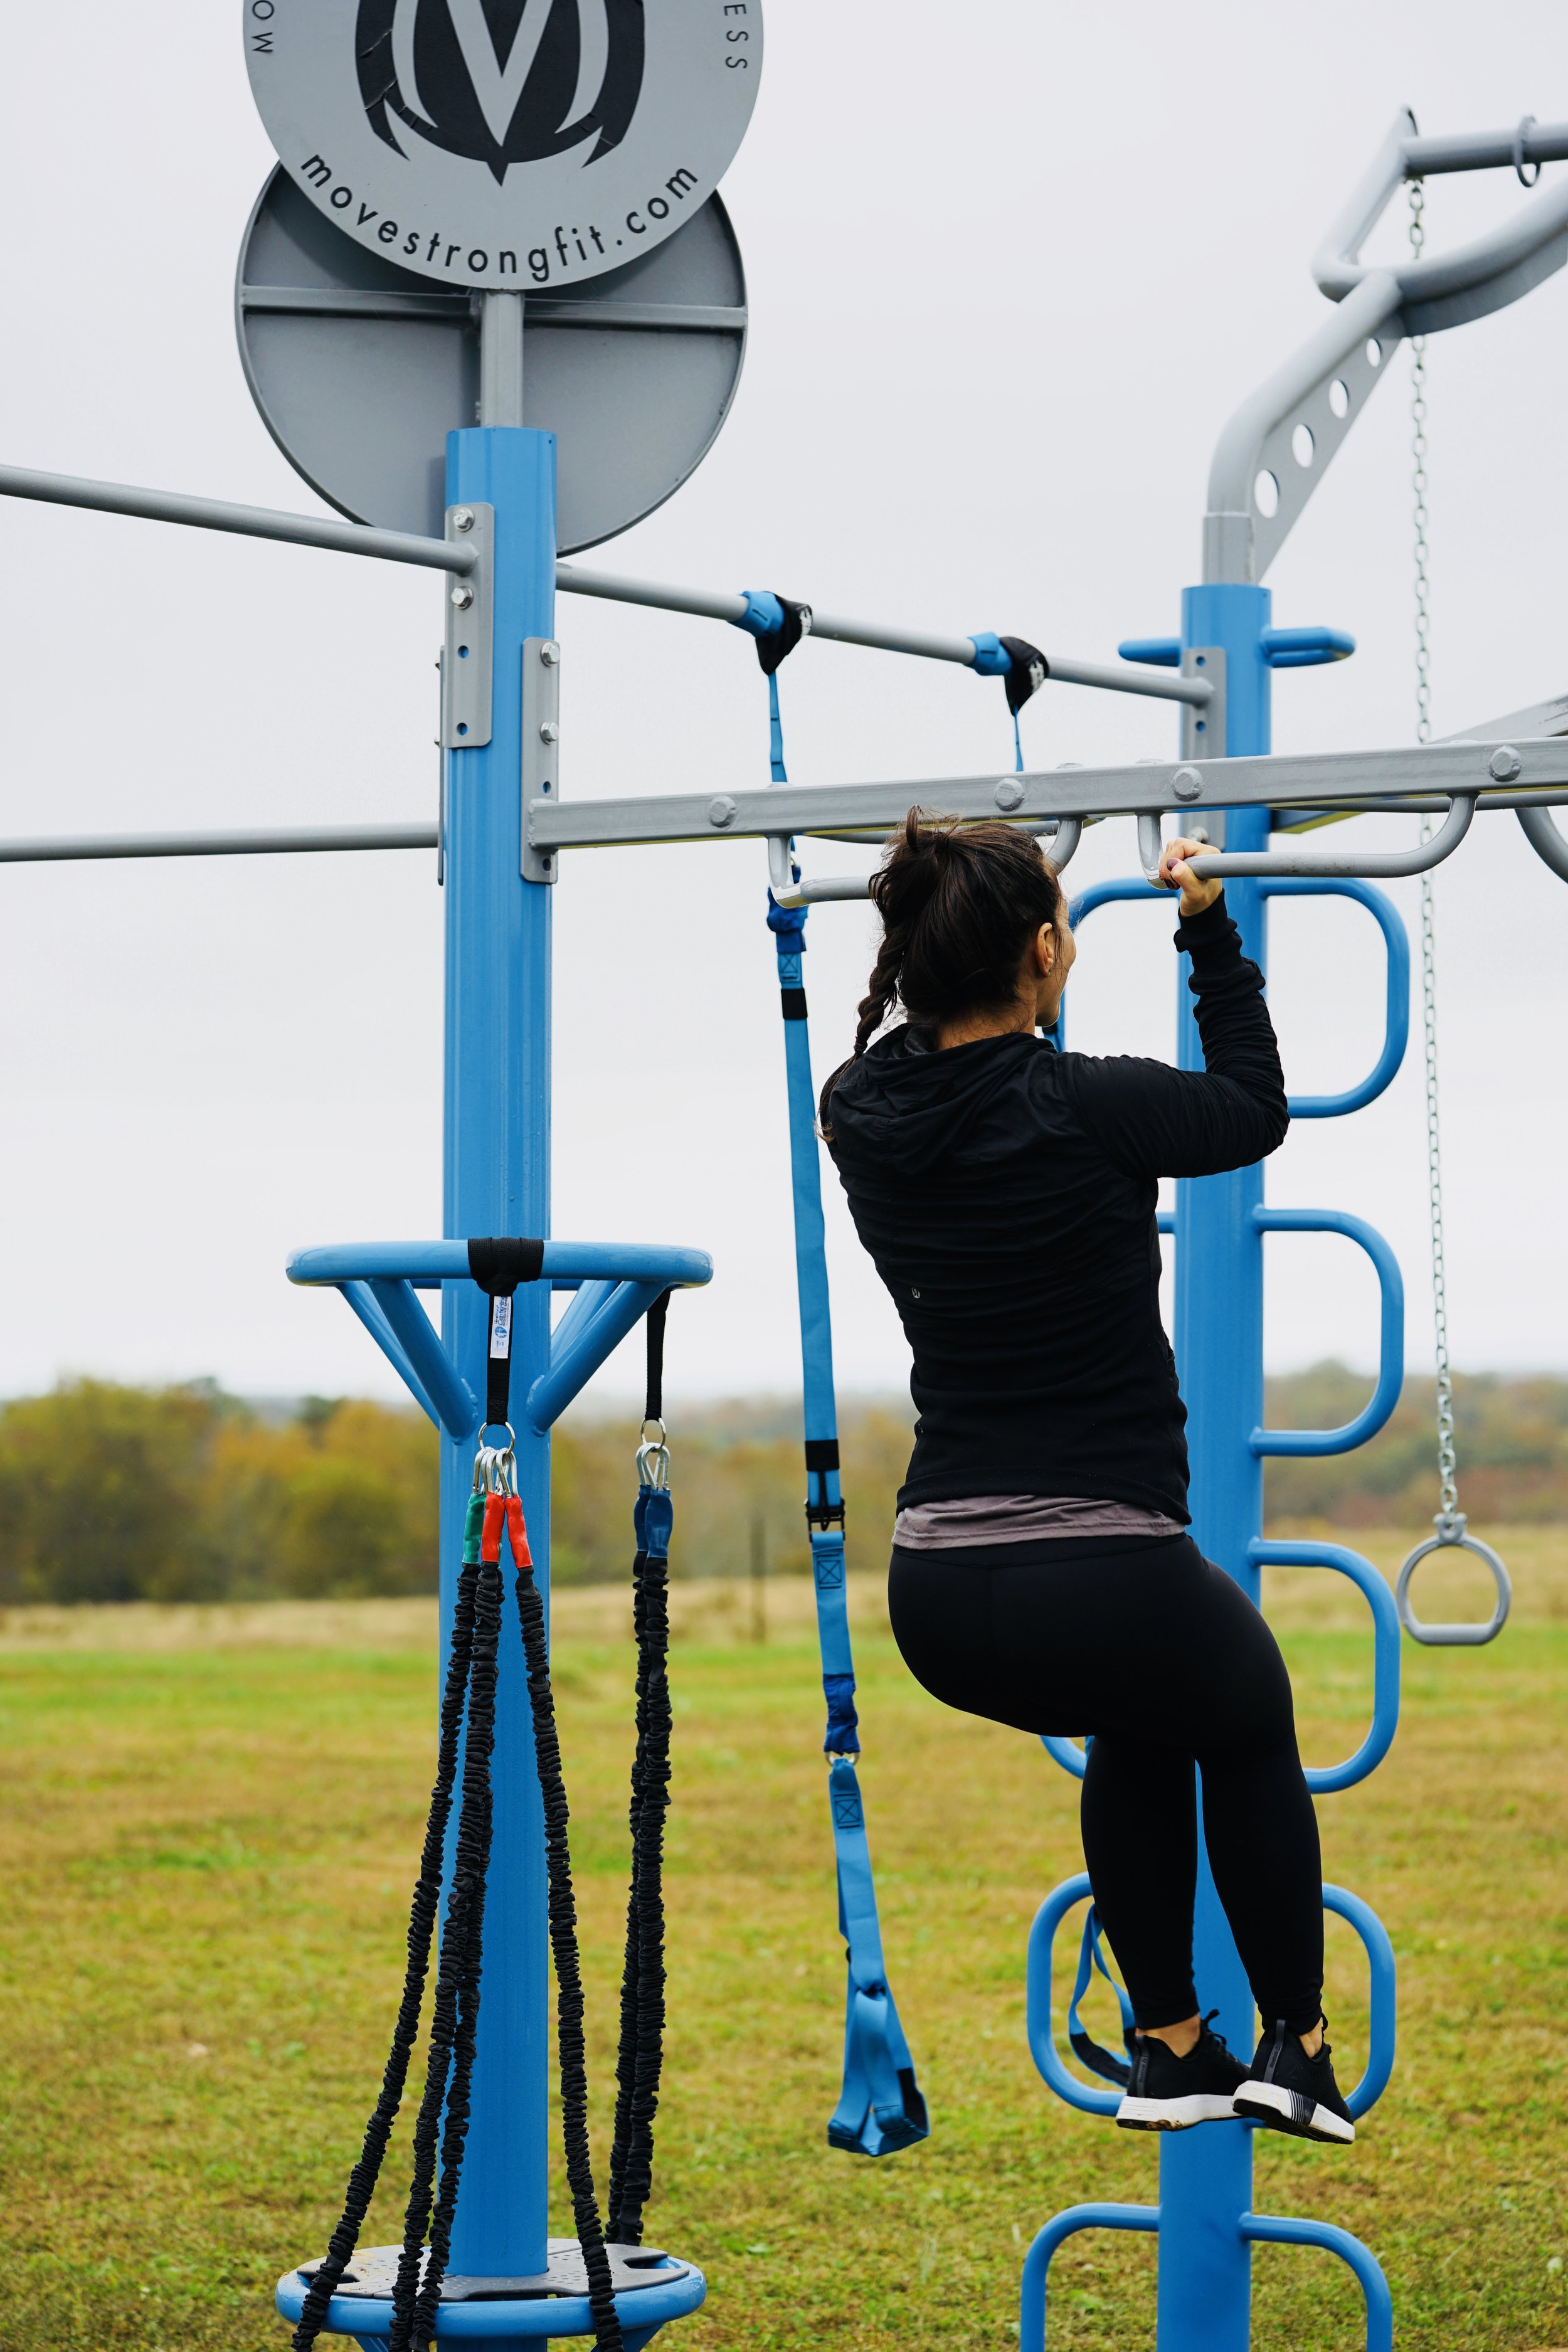 Outdoor fitness equipment pull-ups